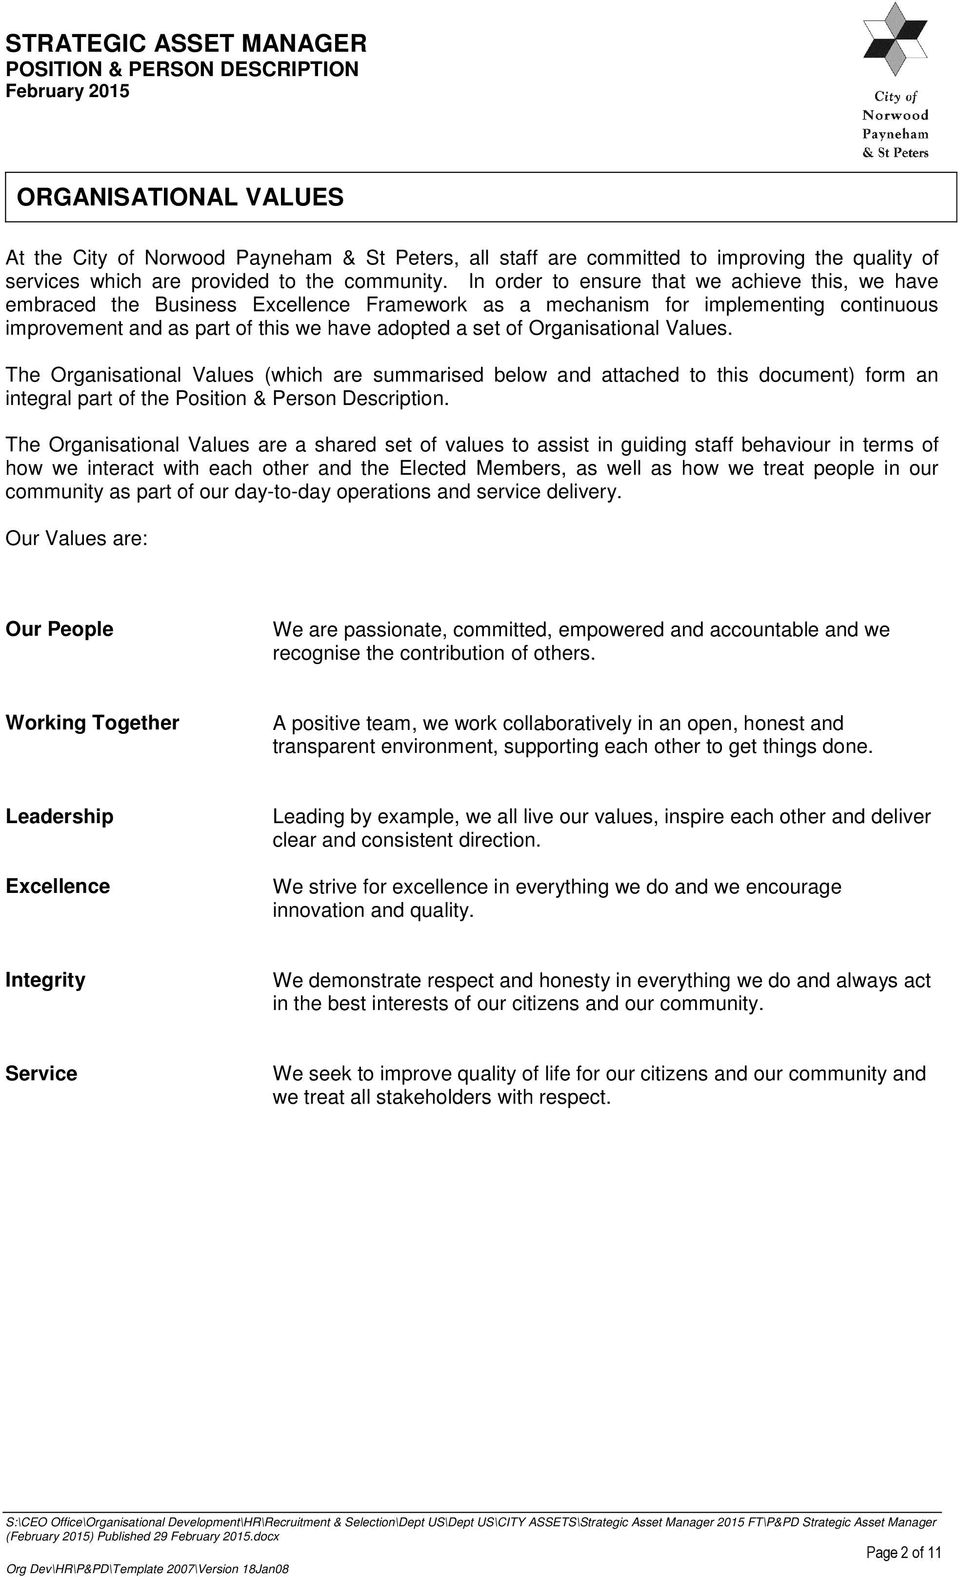 Organisational Values. The Organisational Values (which are summarised below and attached to this document) form an integral part of the Position & Person Description.